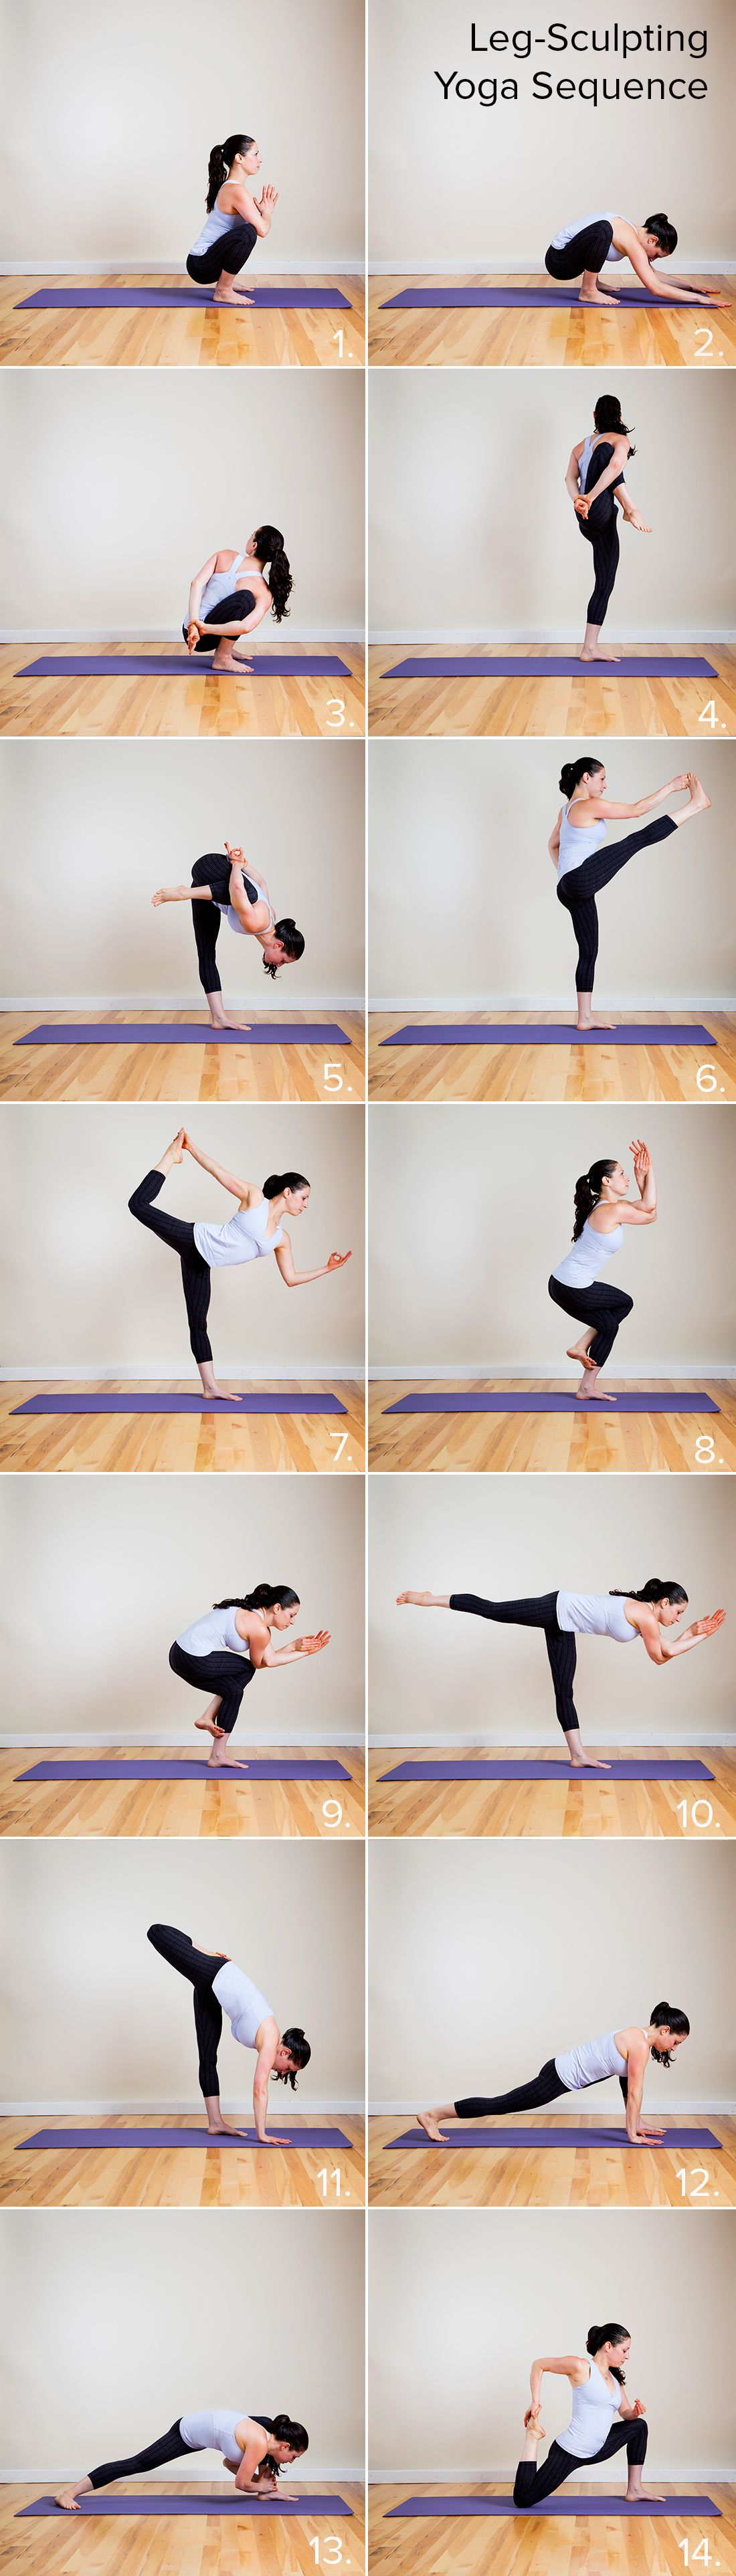 Holy Hot! Yoga Sequence to Do Your Tight Pants Justice. Step up to the plate. Get in shape!! Start your free month now!!! Cancel anytime. #fitness #workout #health #exercise videos #onlinefitness #gymra.com